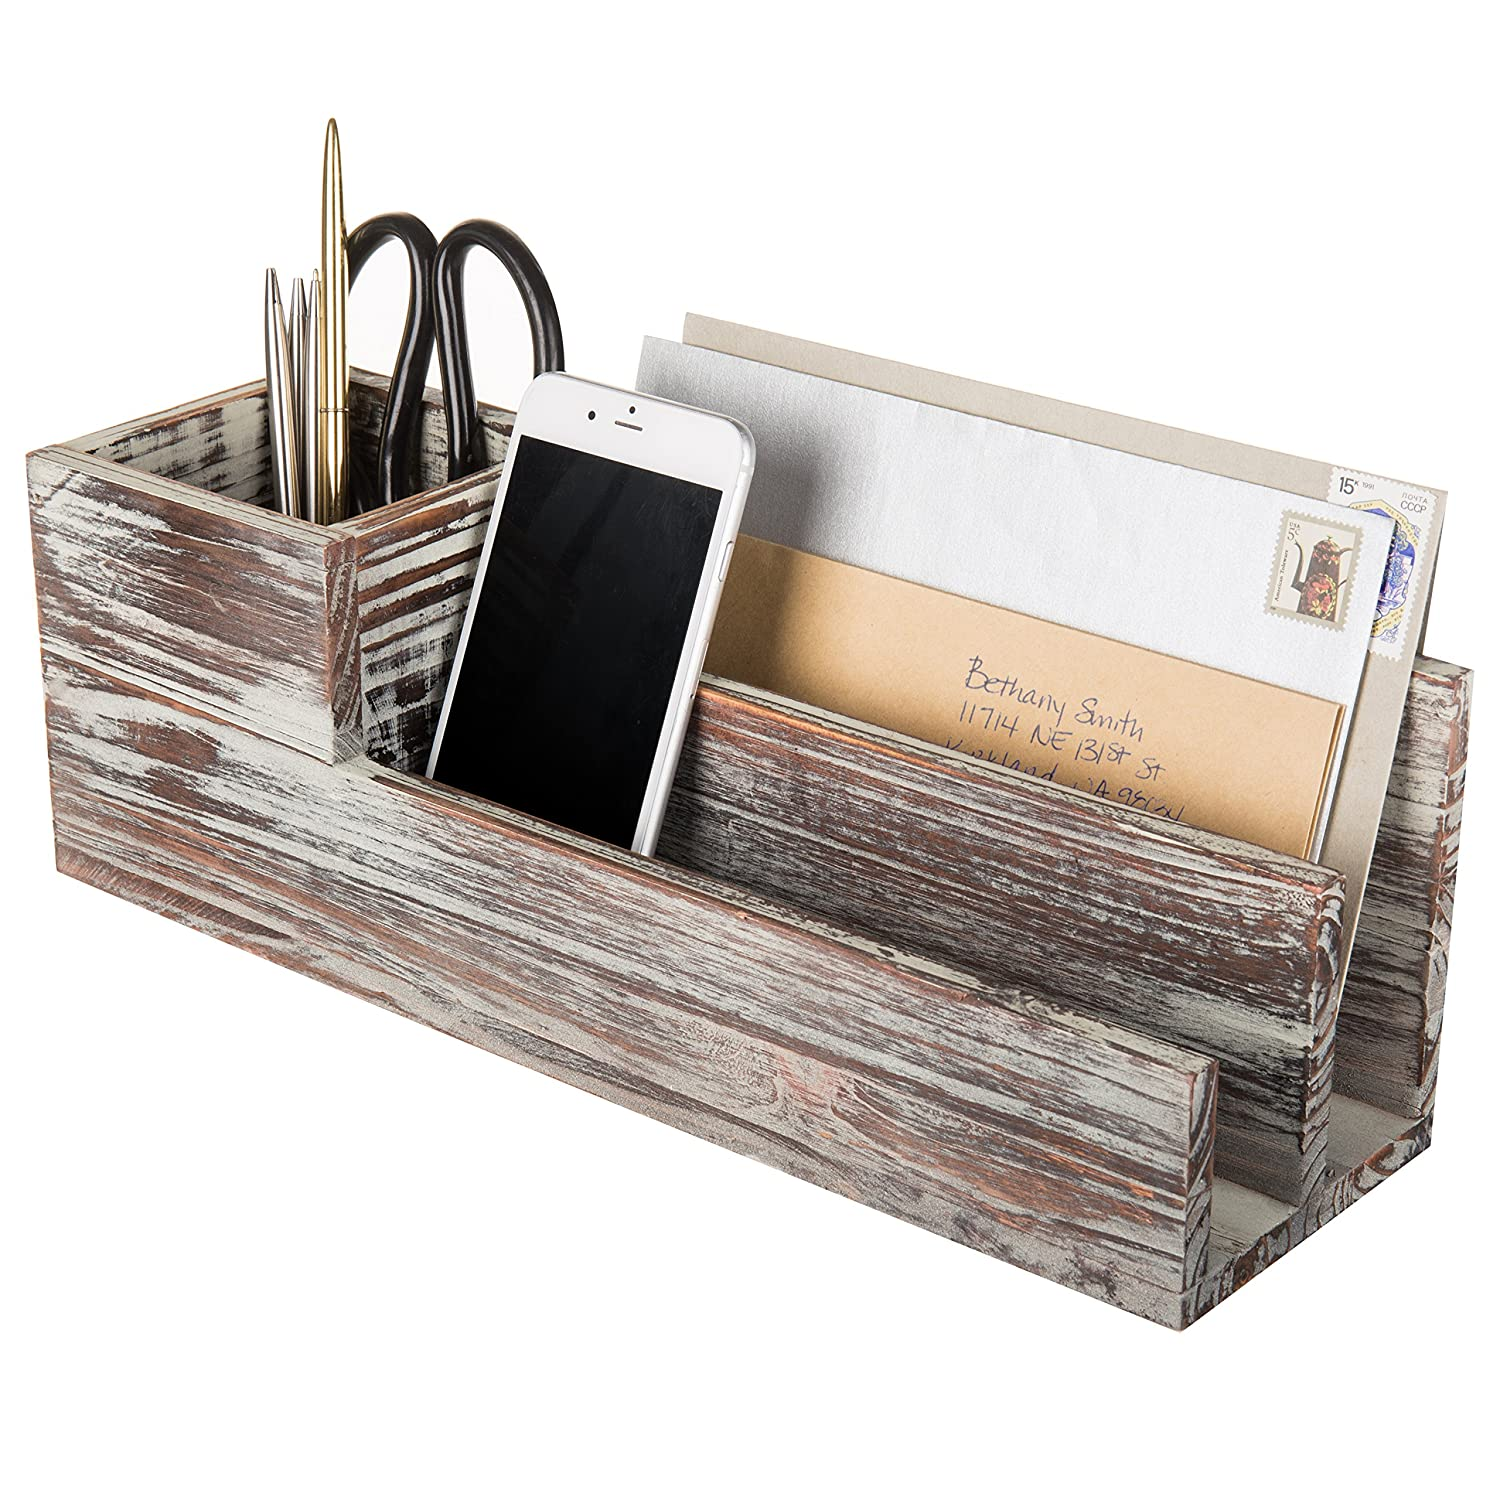 Rustic Torched Wood Desktop Office Supplies Caddy & 2 Slot Letter Mail Sorter Organizer, Brown